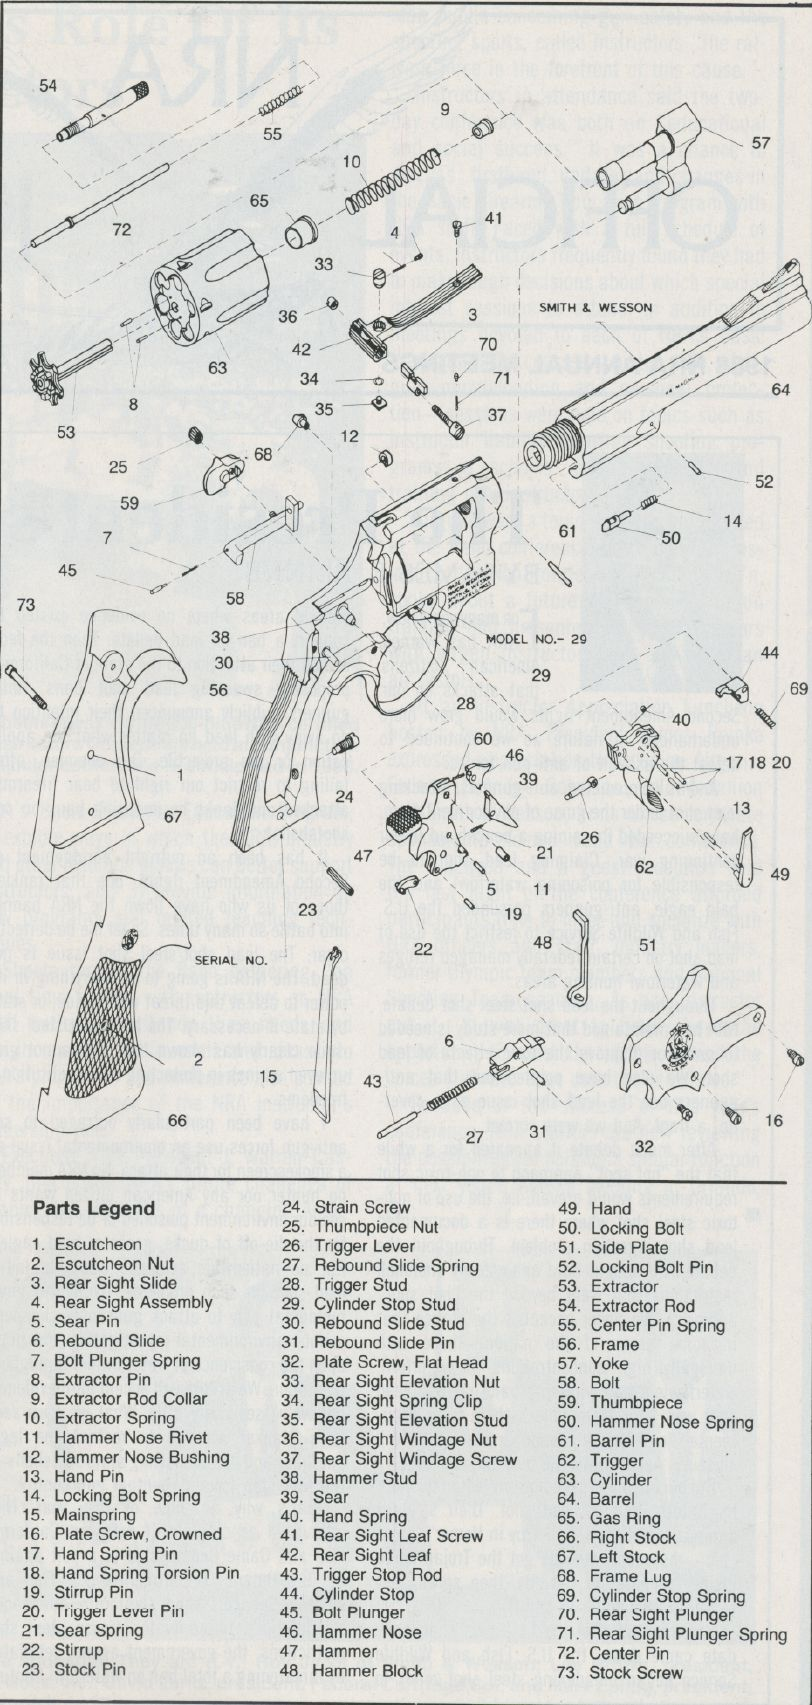 hight resolution of smith wesson model 29 exploded view exploded view handgun revolvers firearms